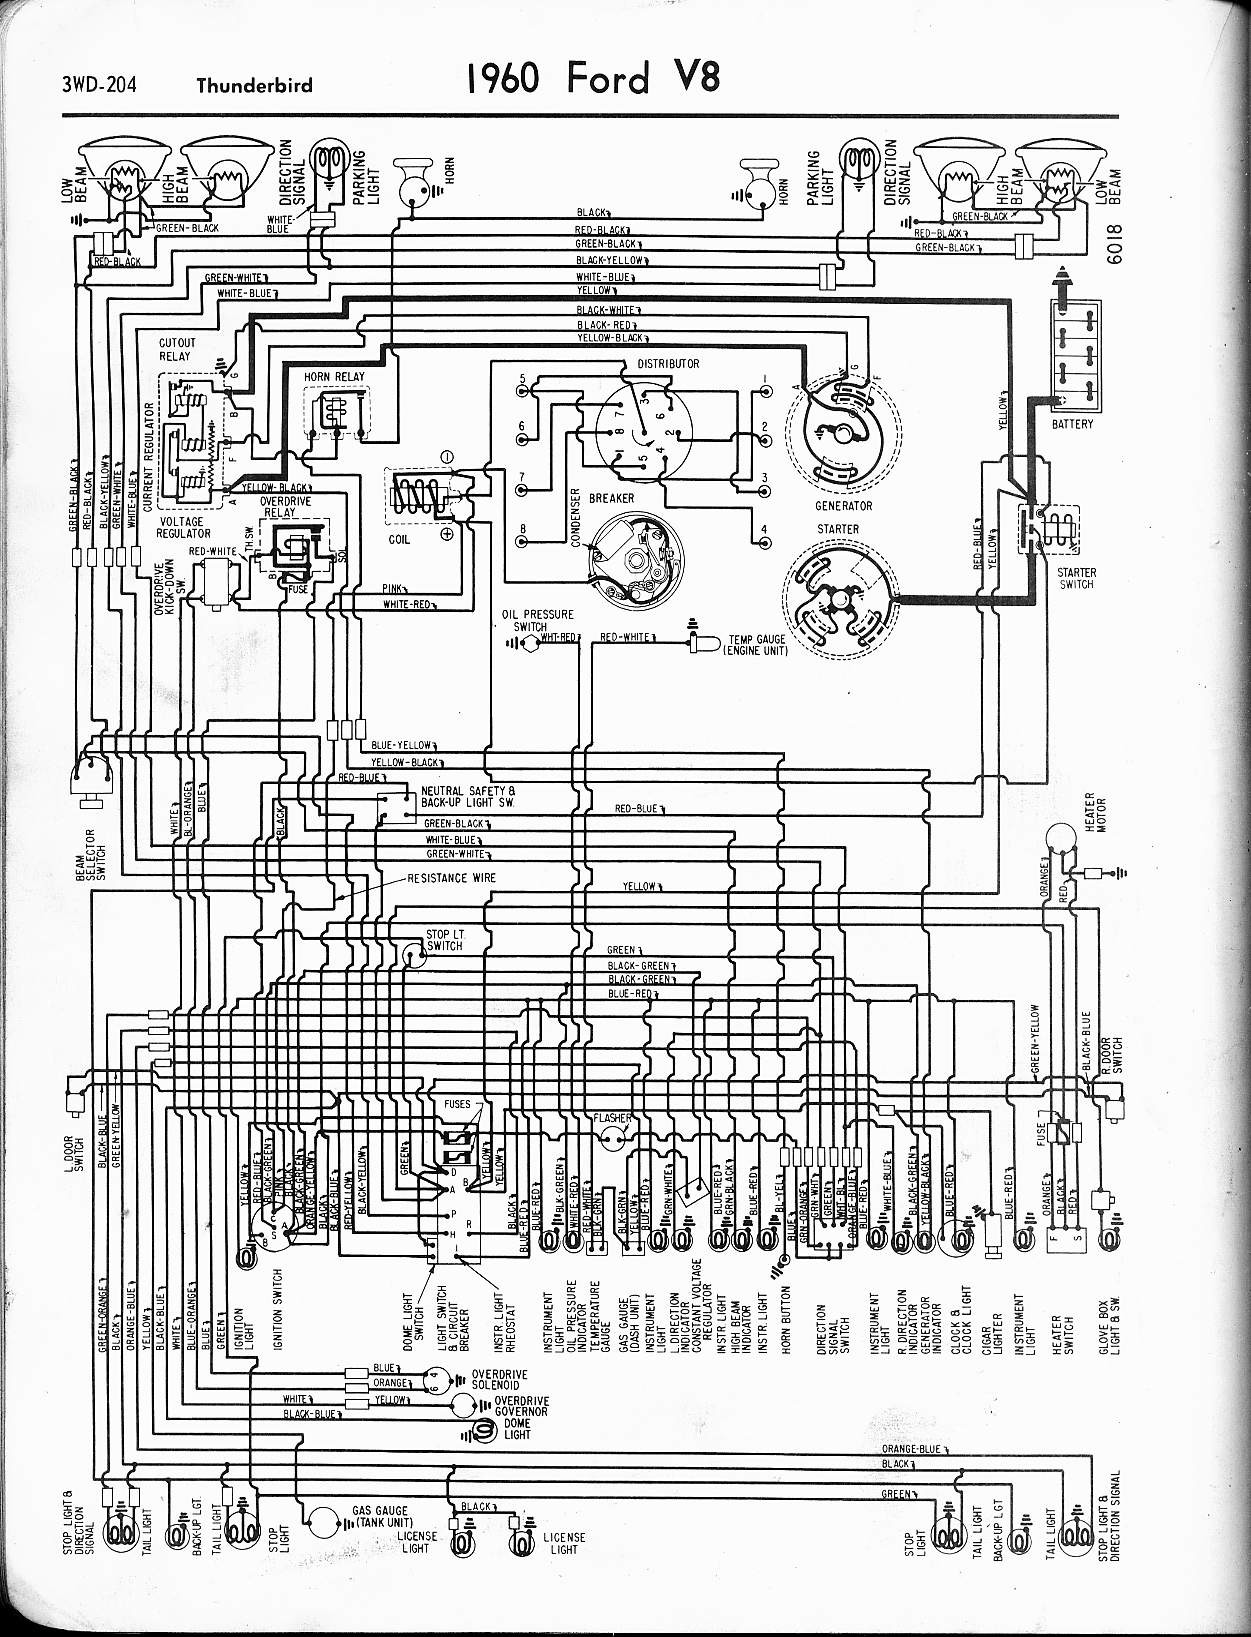 Wrire Schematic for A 1989 Ezgo Textron Model Xi875 5fcbdb1 1972 F250 Ignition Wiring Schematic Of Wrire Schematic for A 1989 Ezgo Textron Model Xi875